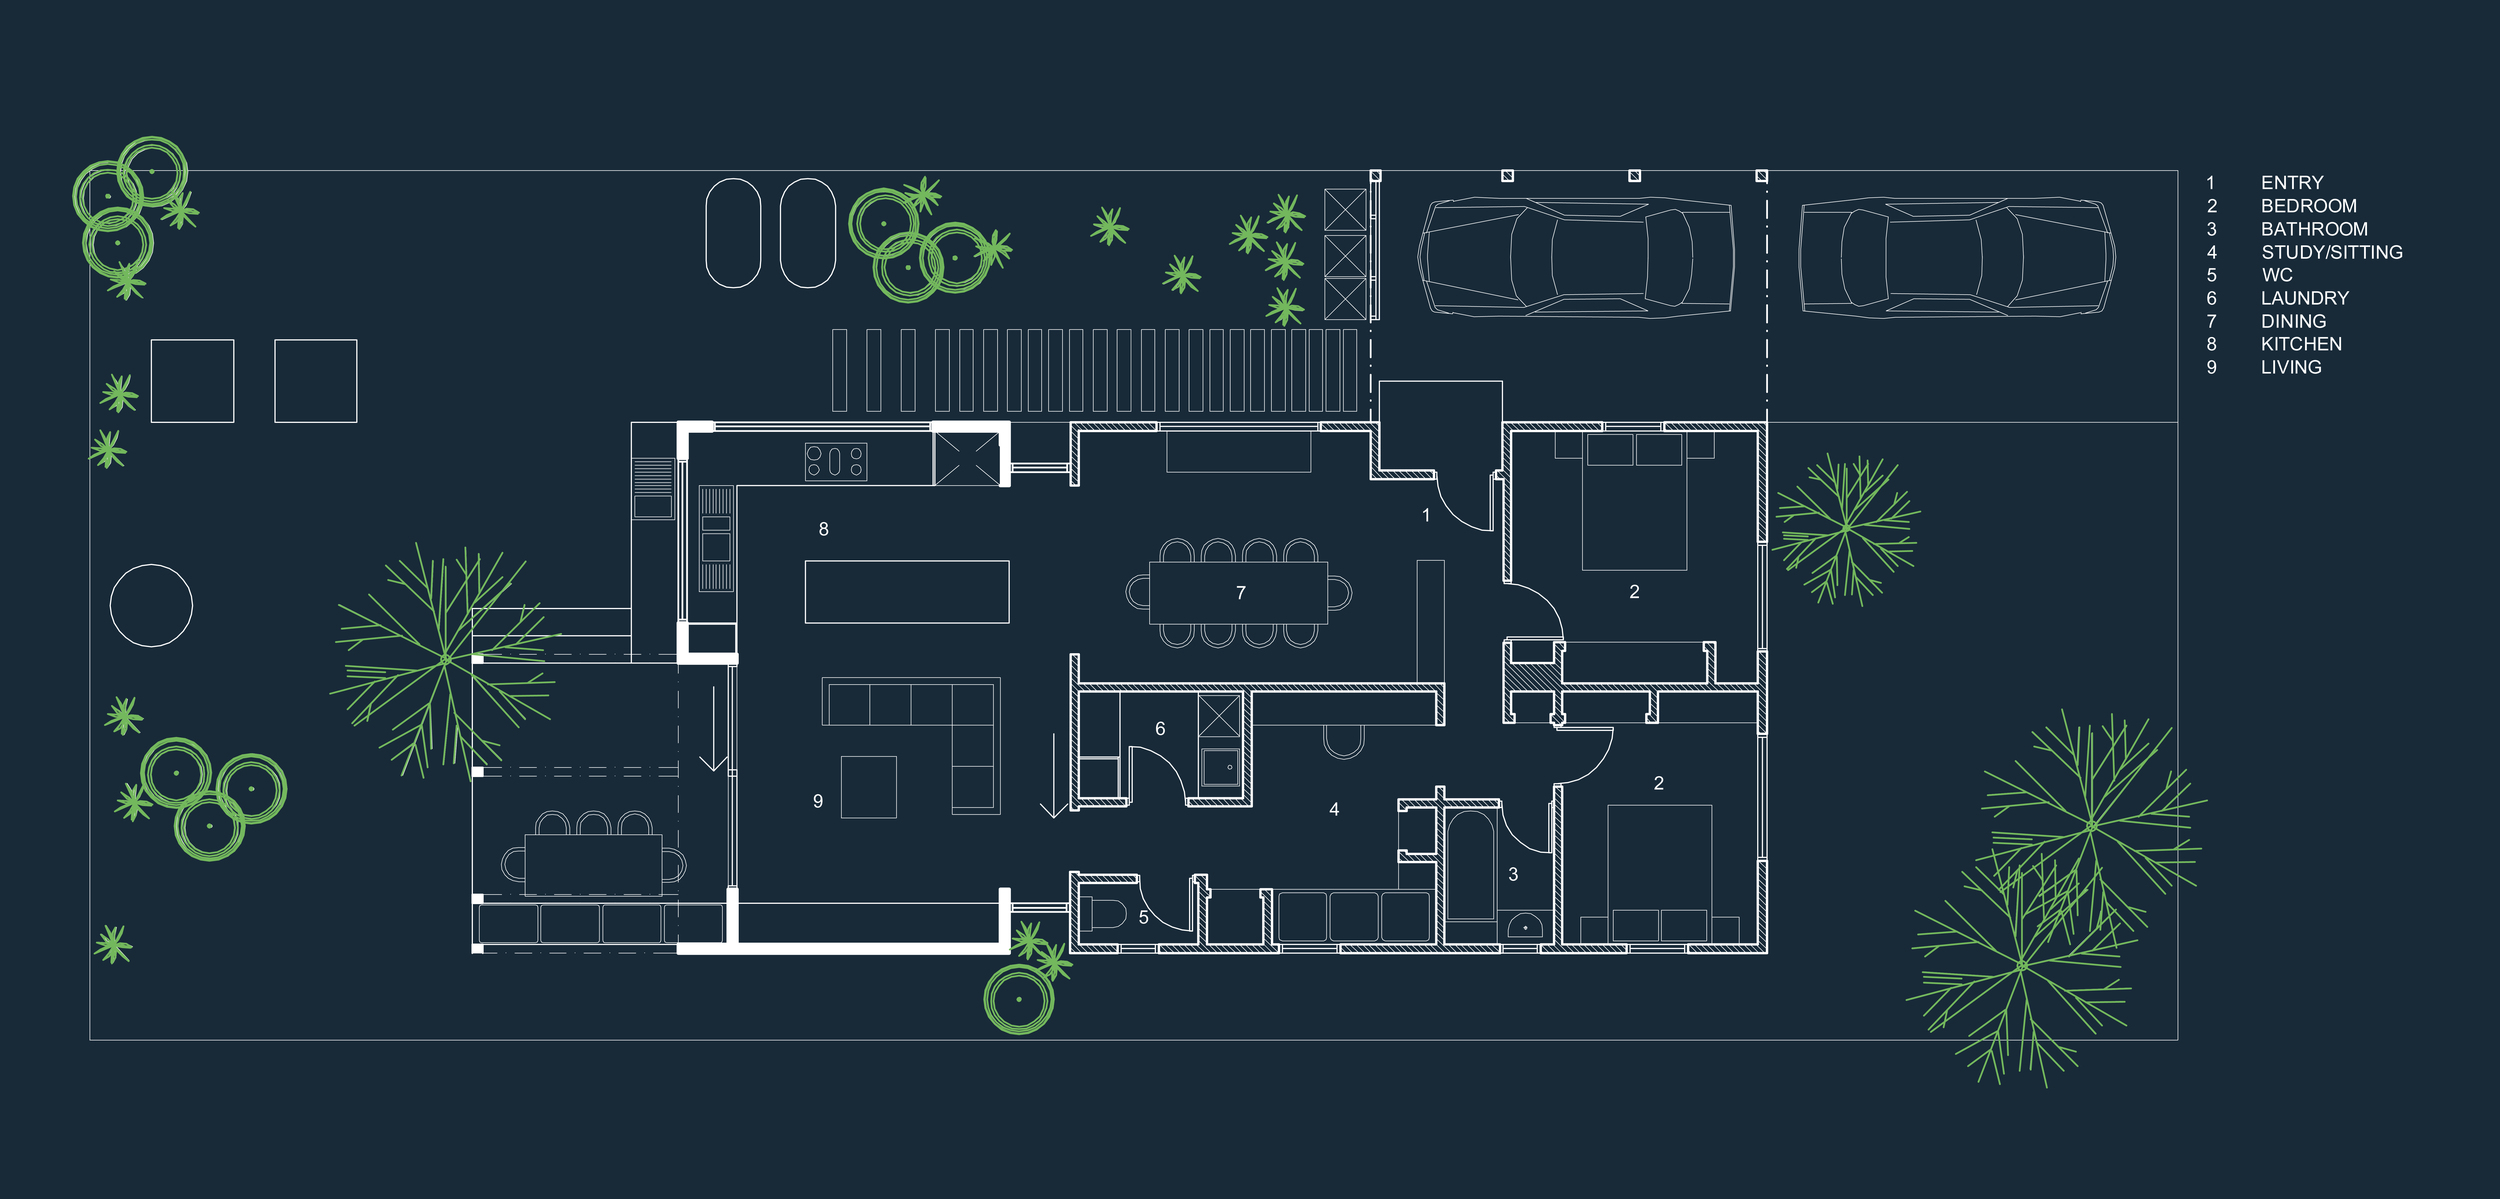 Pitt+St+Floor+Plan.jpg